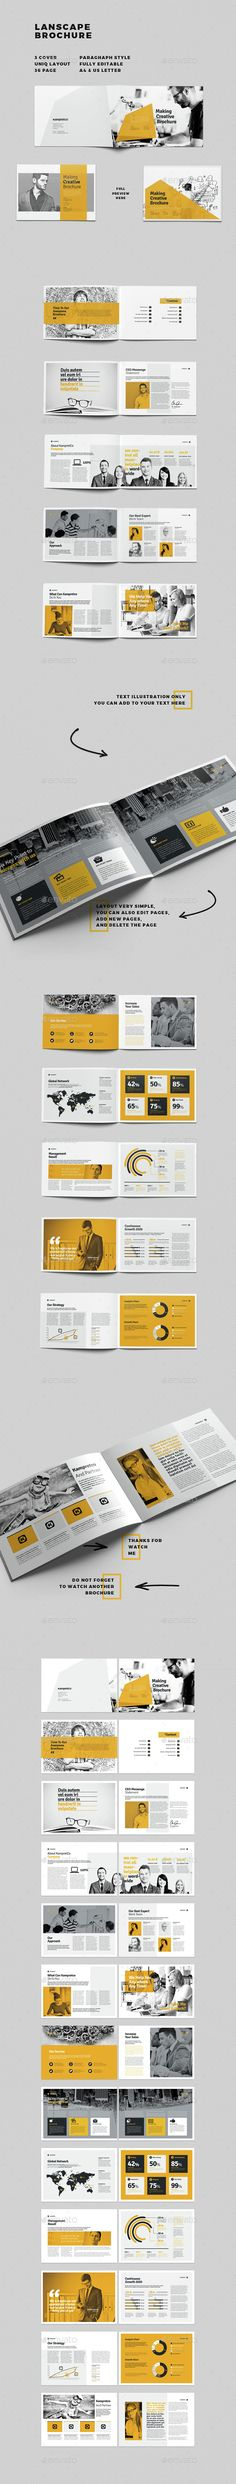 Modern A4 Corporate Business Brochure template Brochure Designs - pamphlet layout template